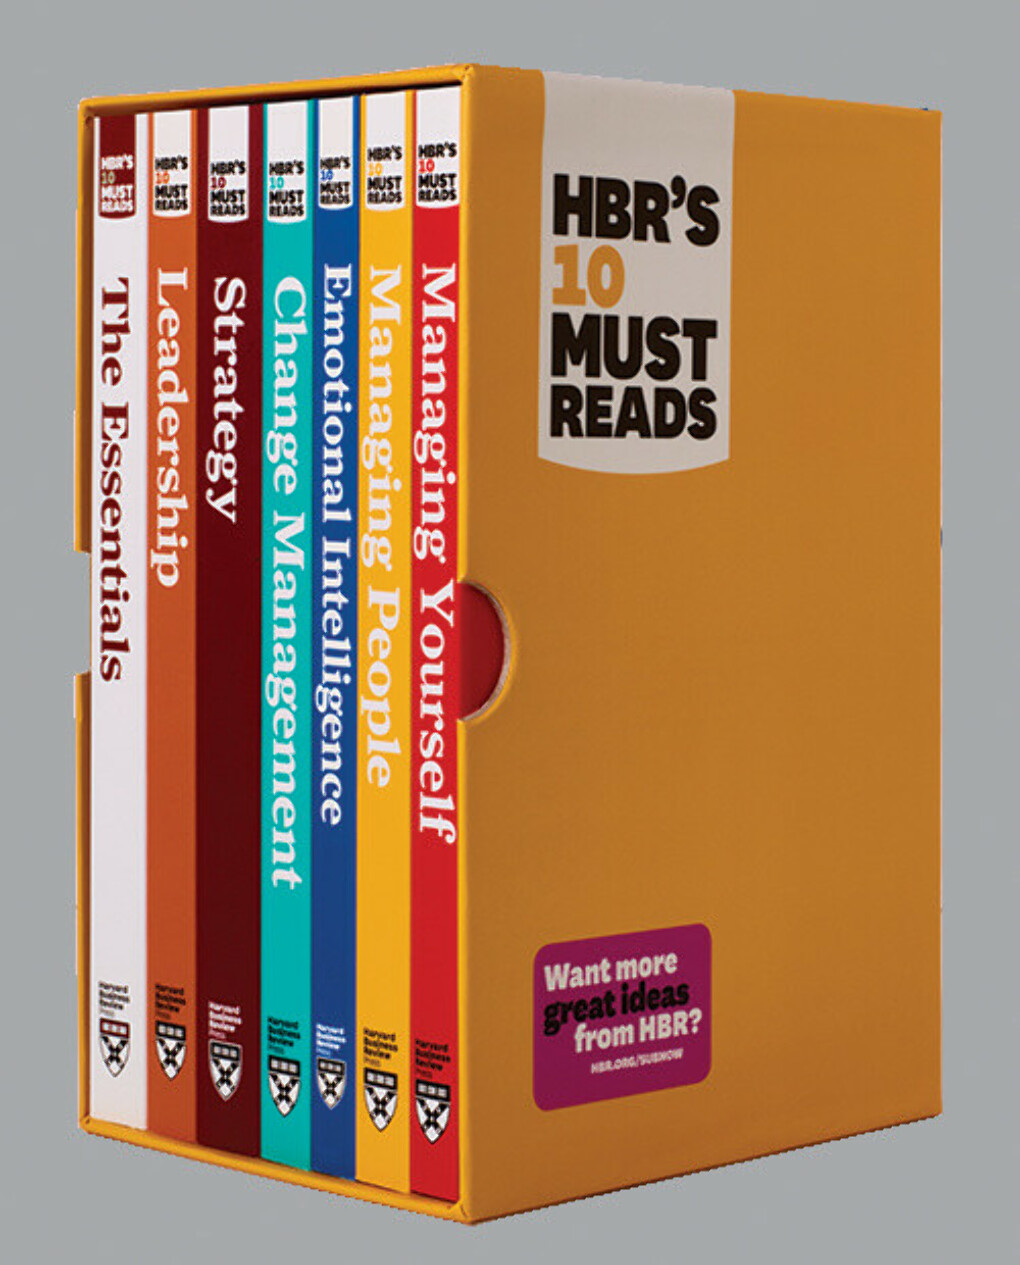 HBR's 10 Must Reads Boxed Set with Bonus Emotional Intelligence (7 Books)